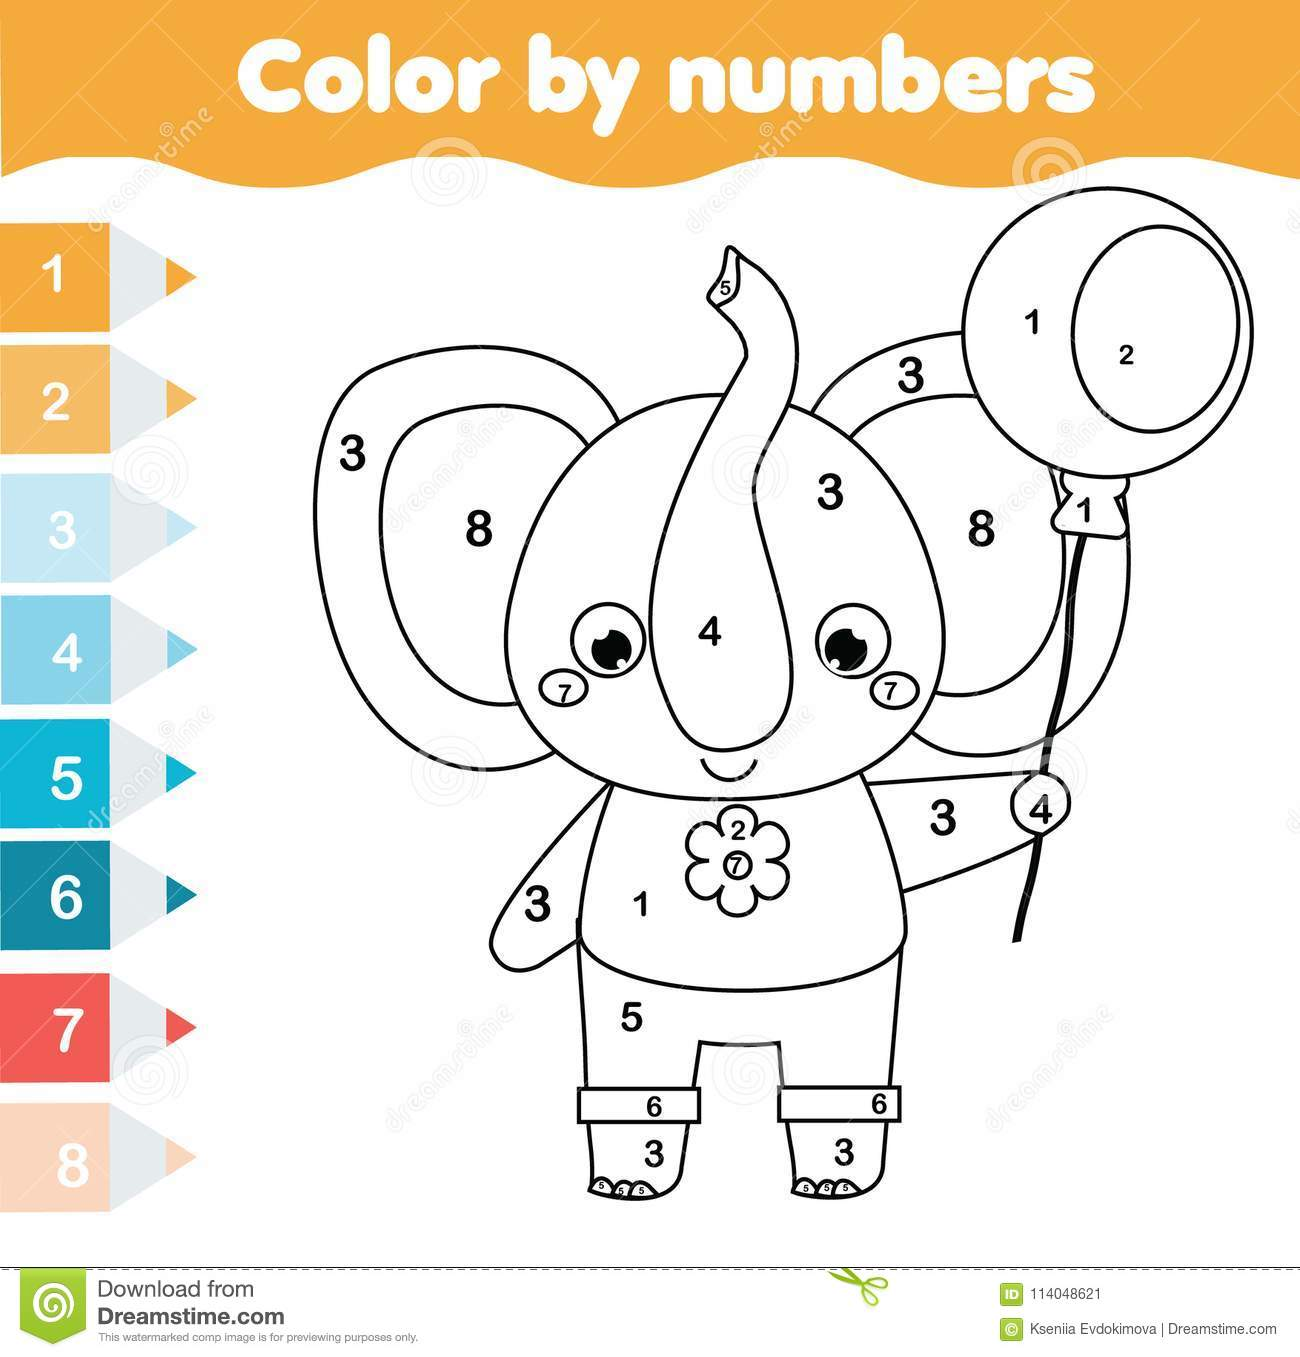 Children Educational Game Coloring Page With Elephant Color By Numbers Printable Activity